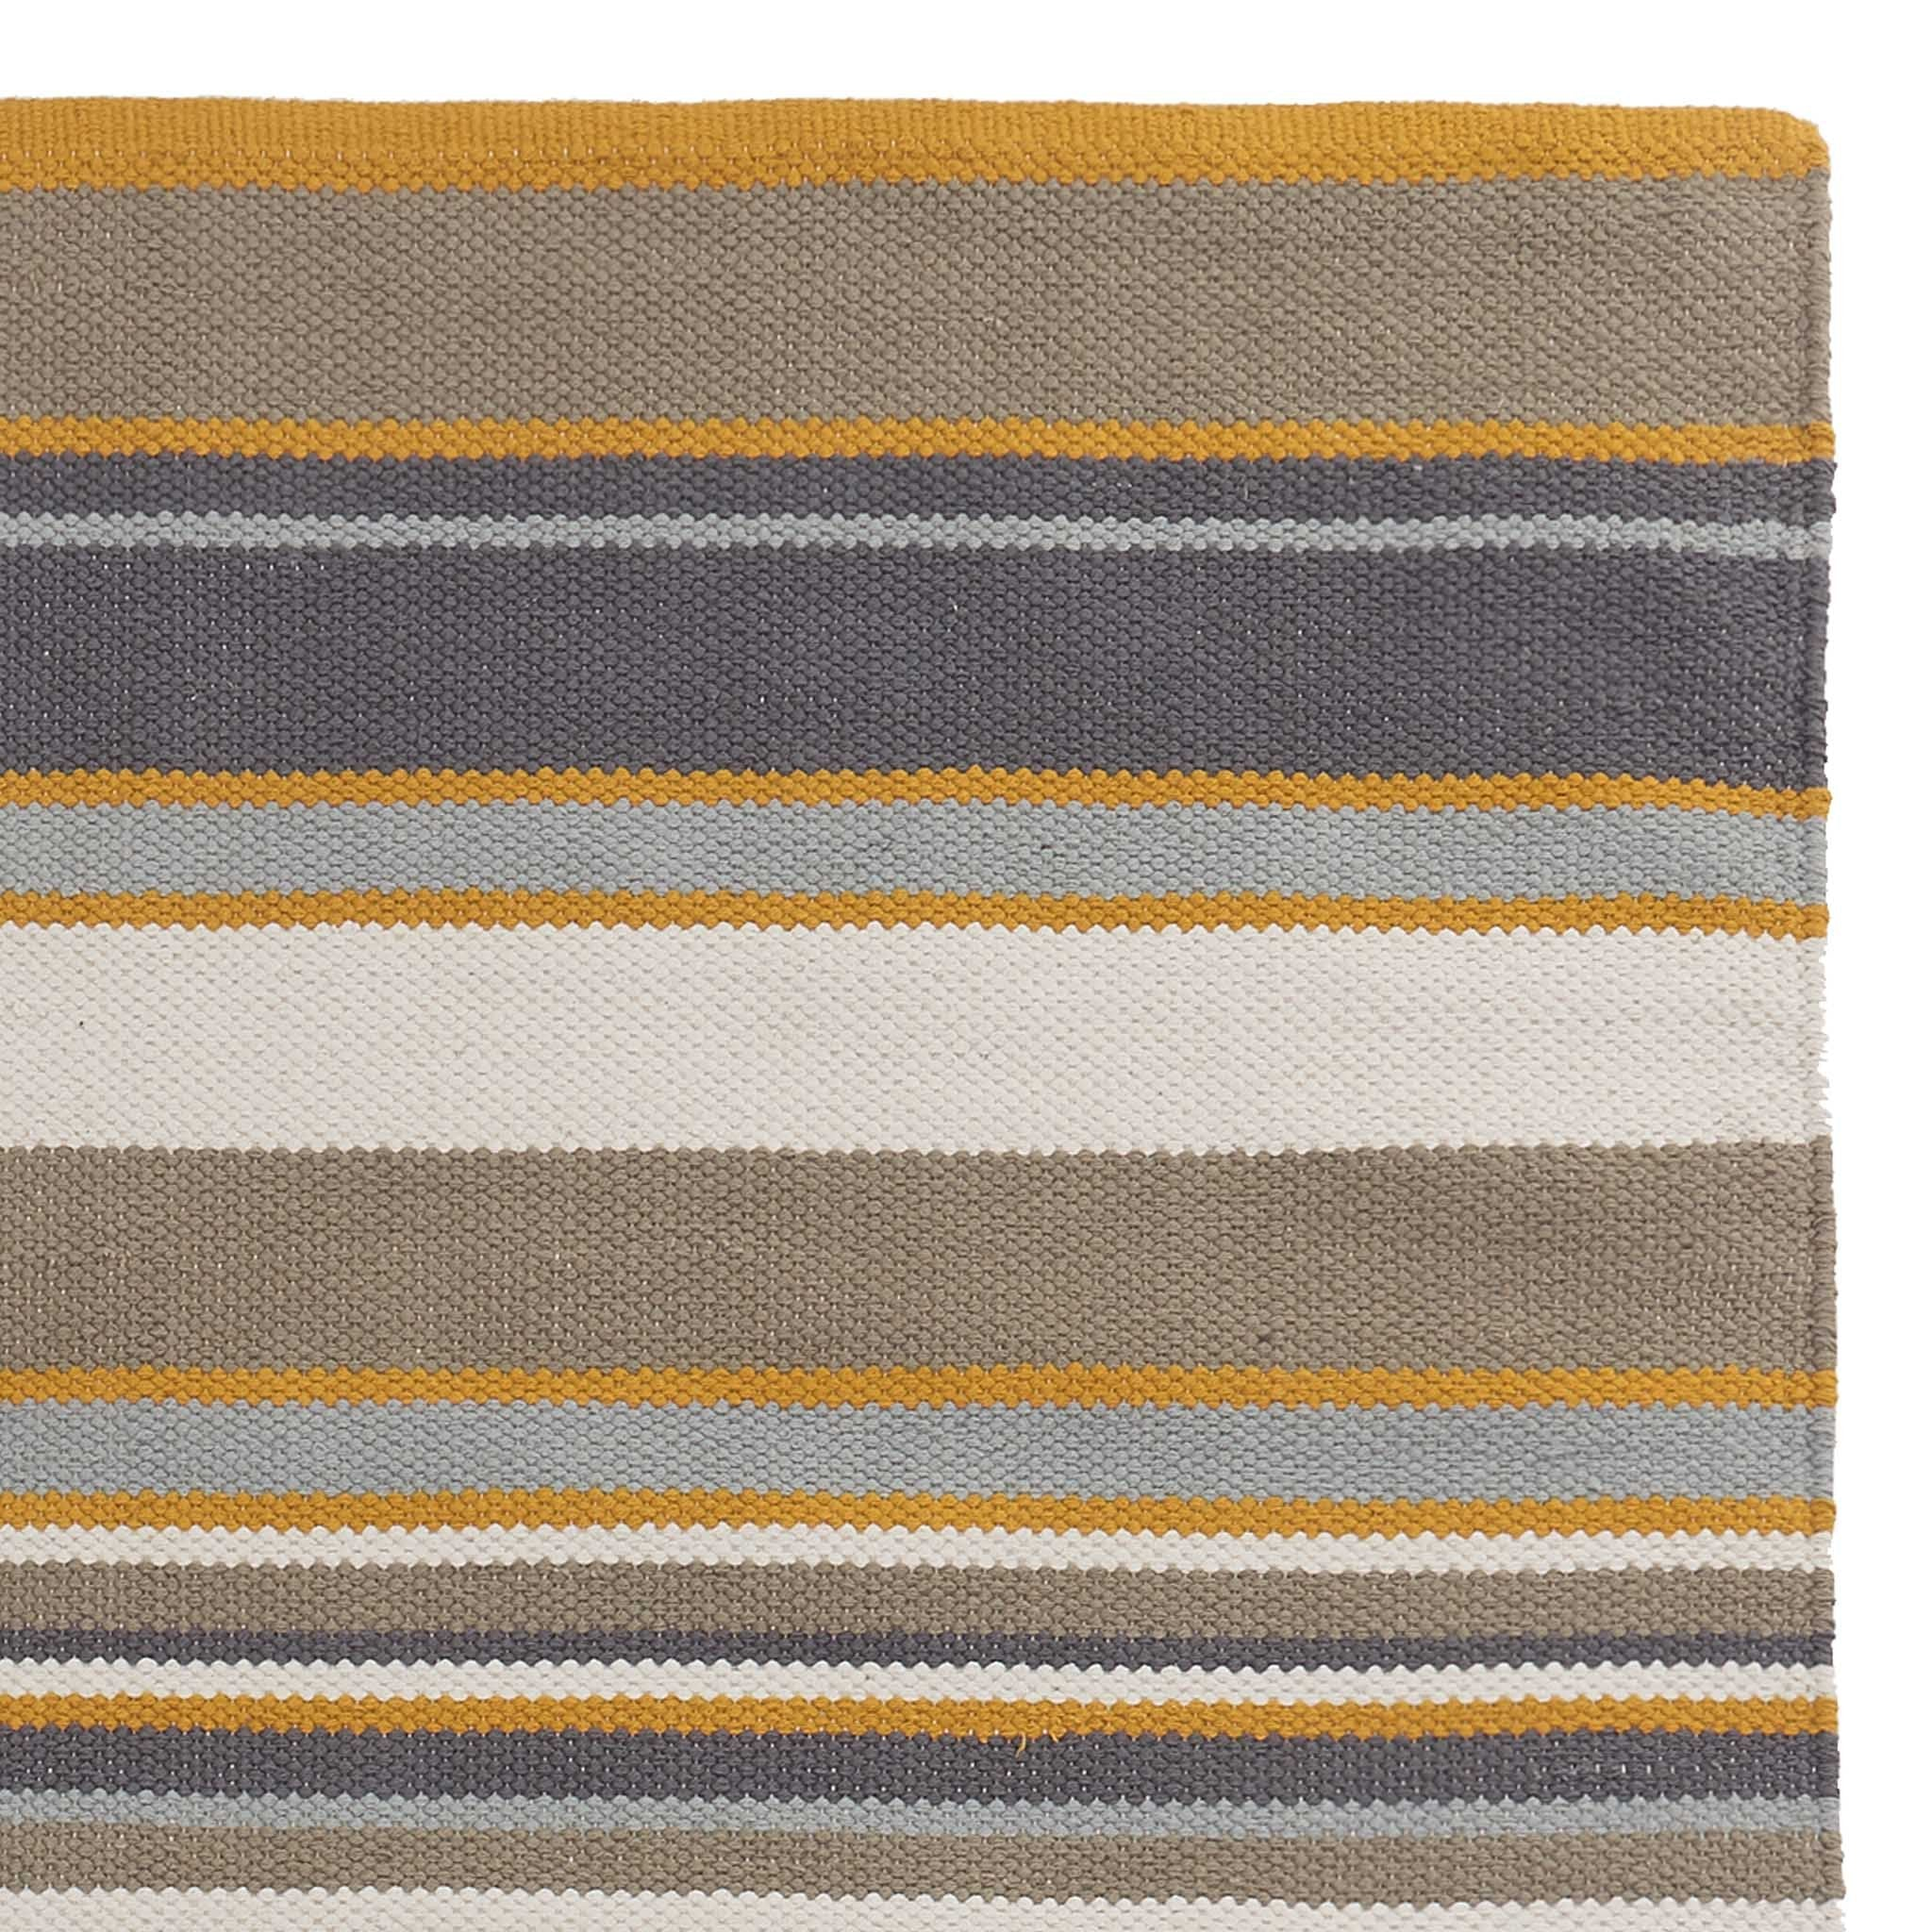 Mandana Rug dark grey & olive green & mustard, 100% cotton